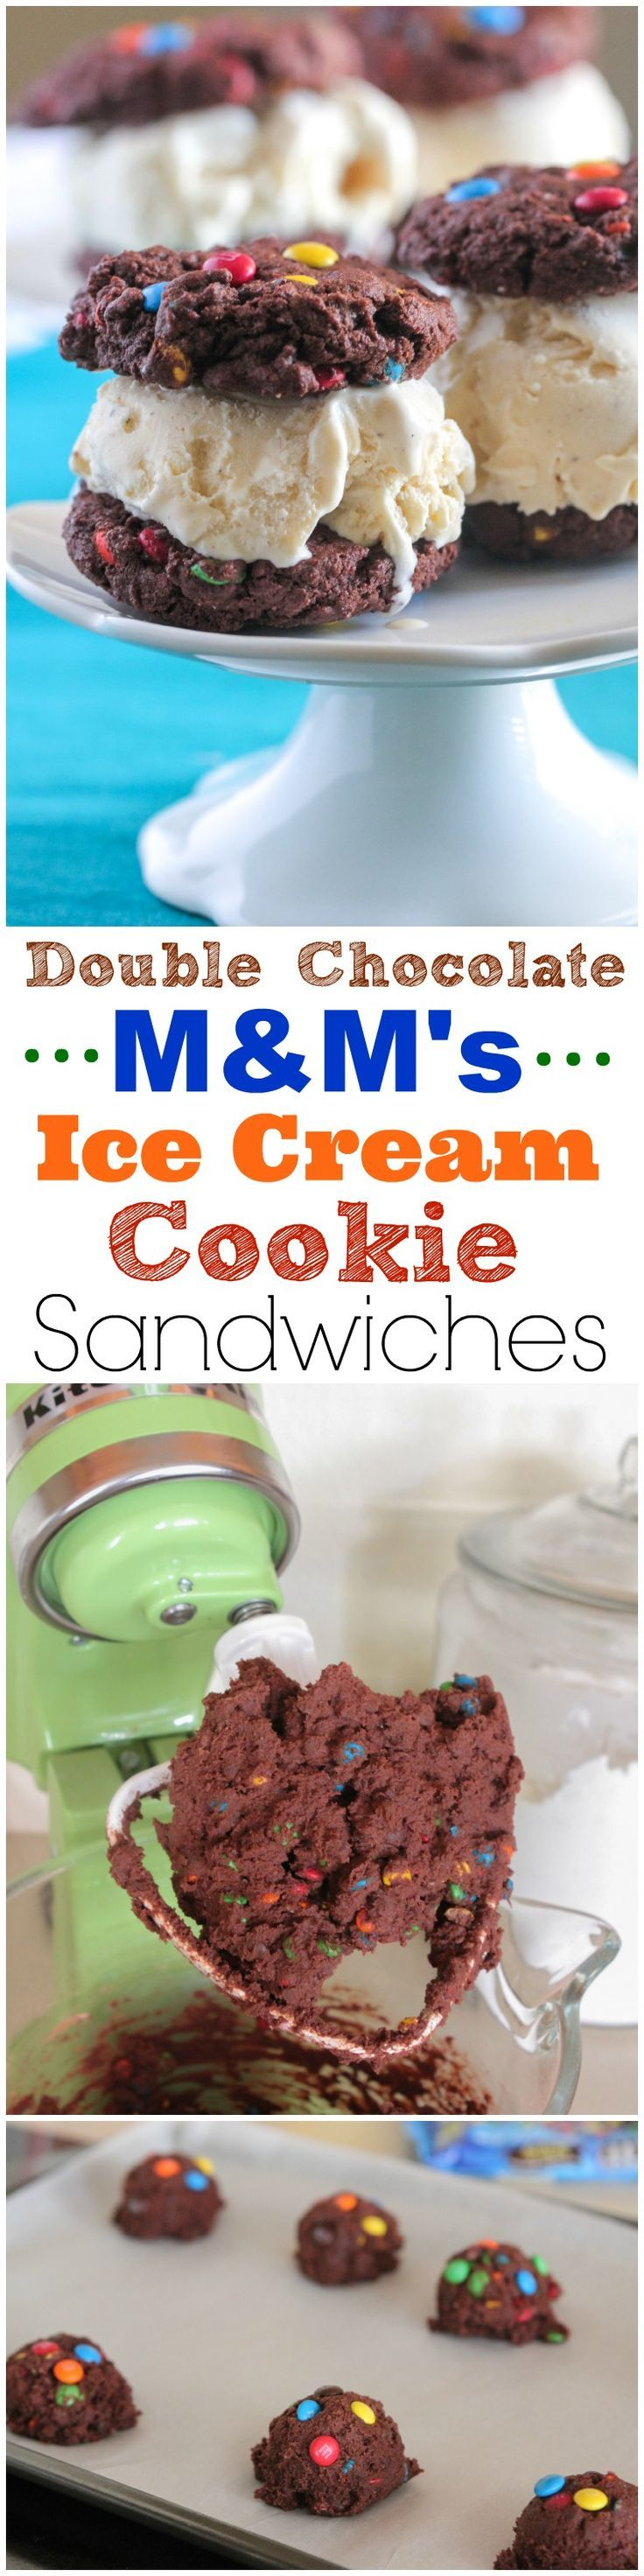 Double Chocolate M&M's Ice Cream Cookie Sandwiches